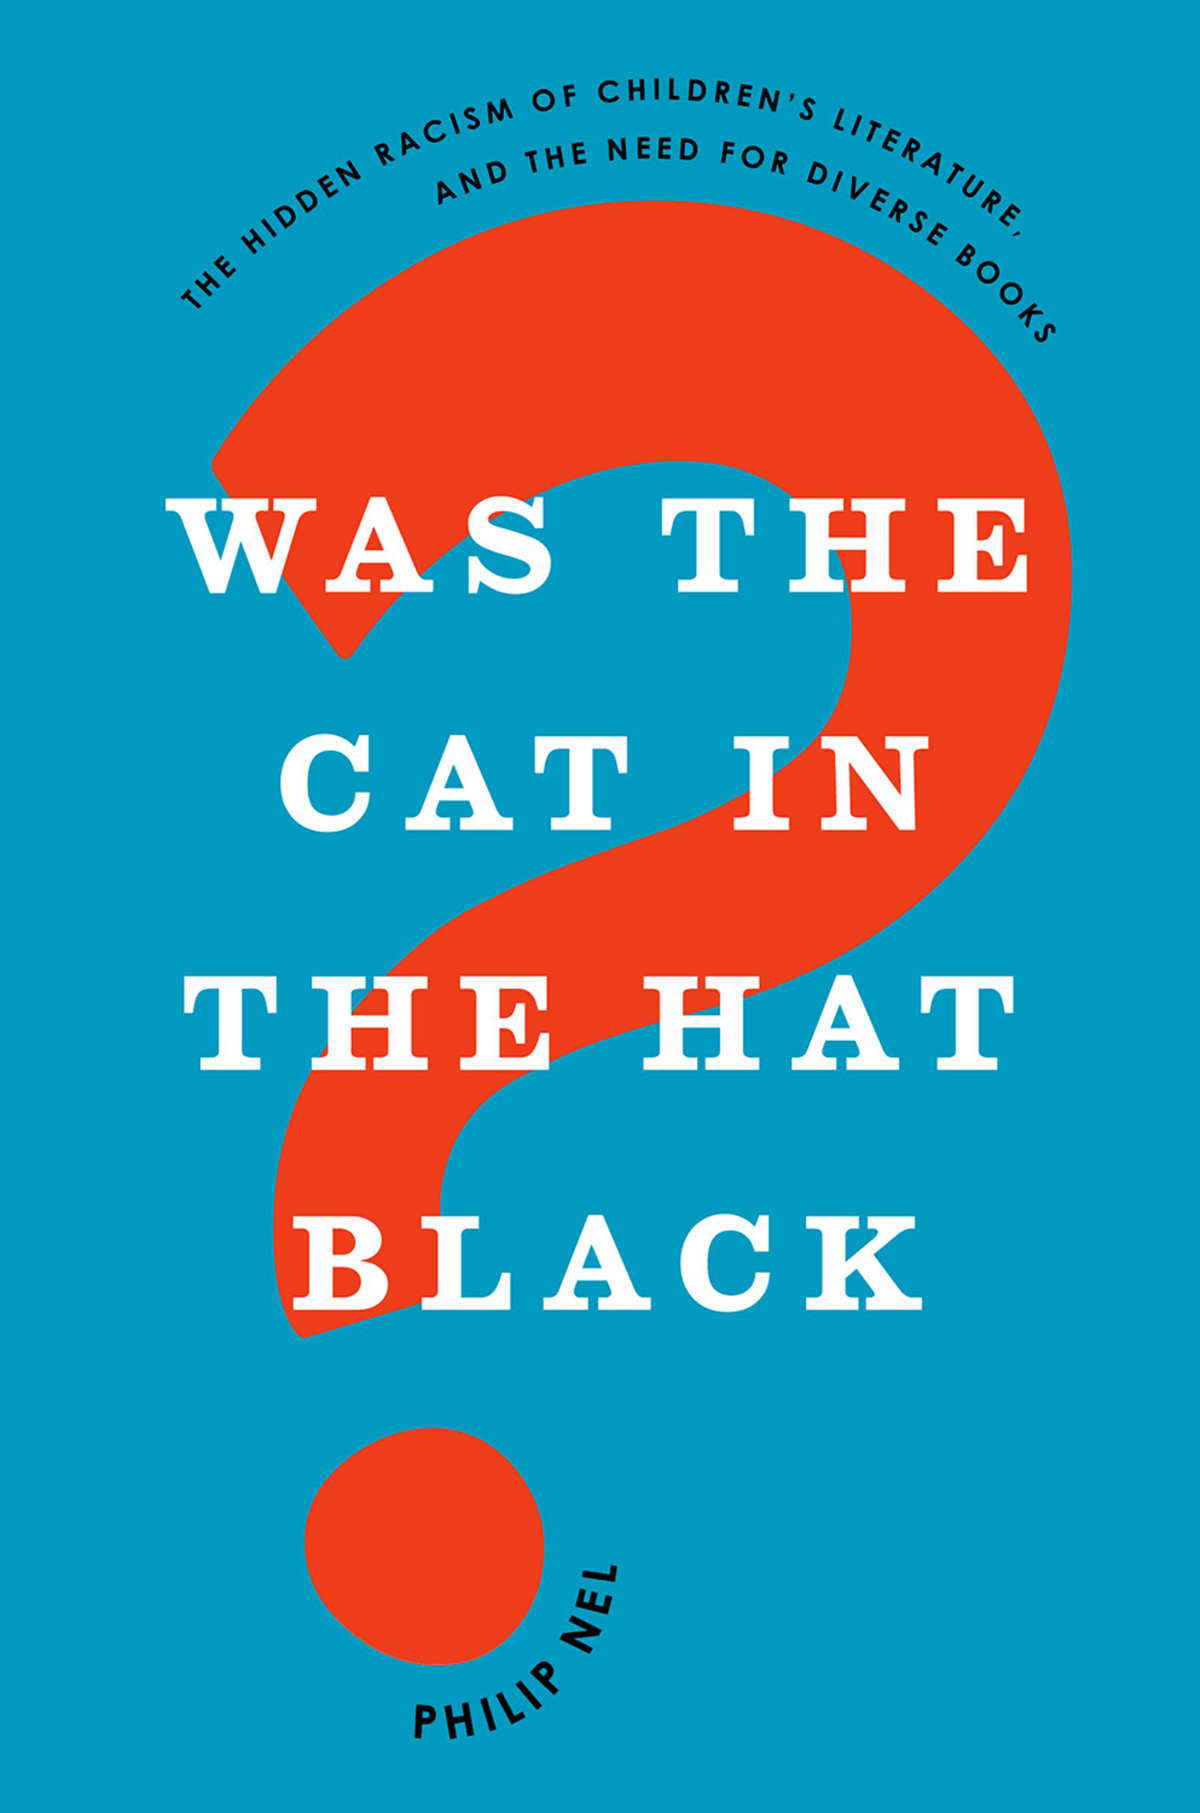 Was the Cat in the Hat Black? by Philip Nel | SLJ Review